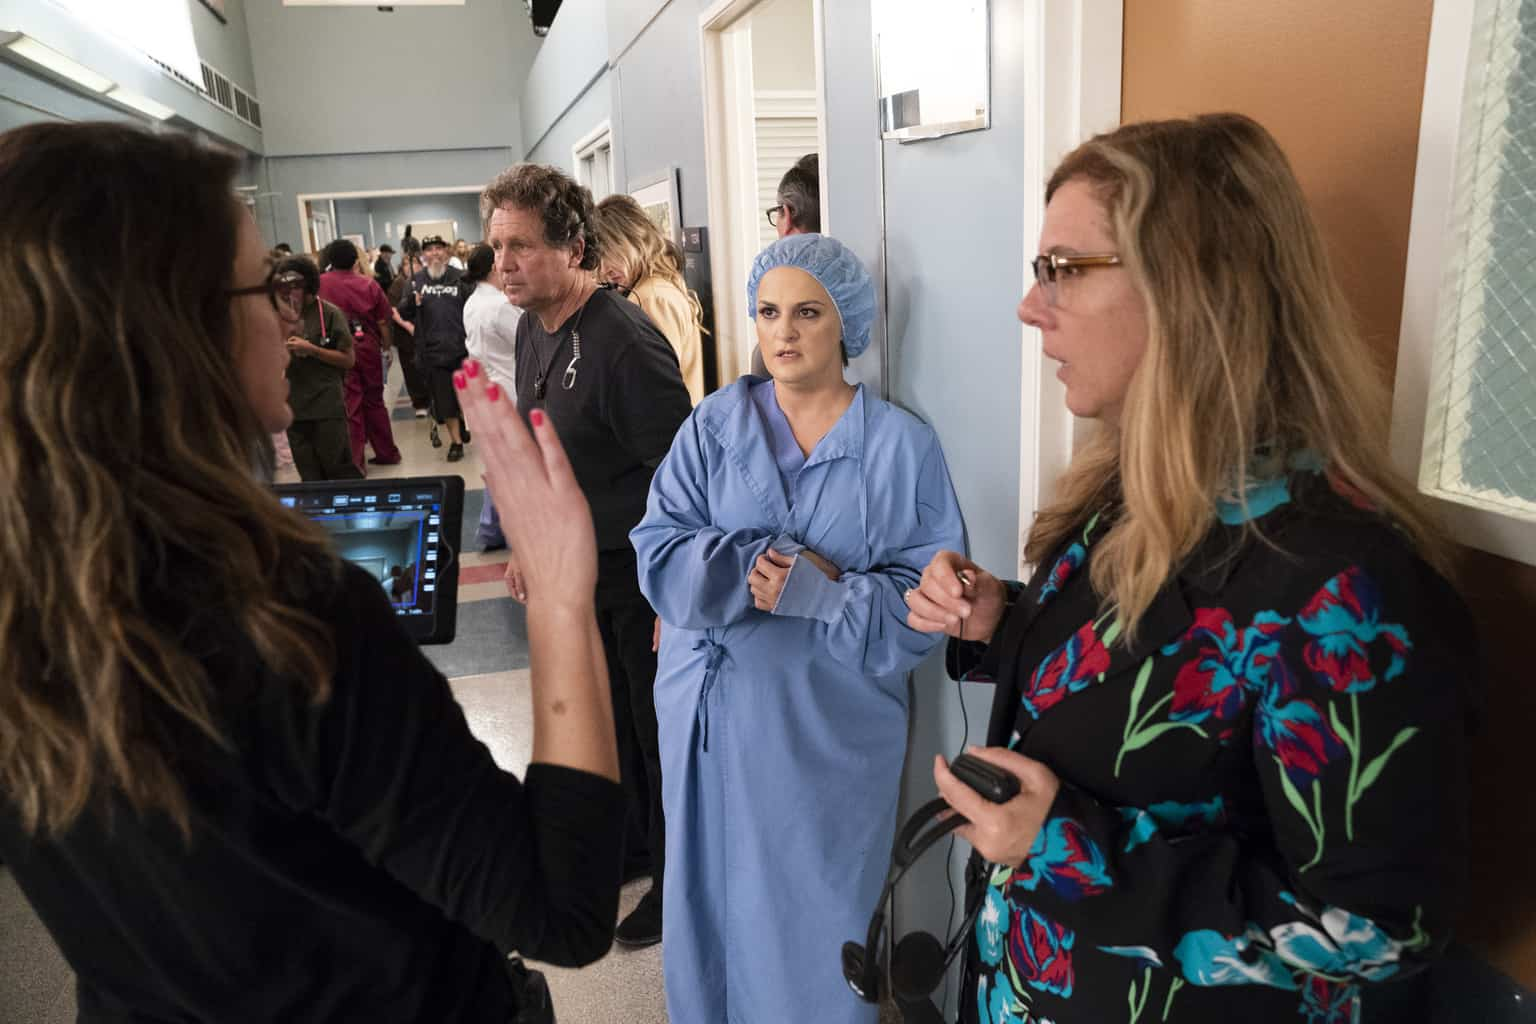 Grey's Anatomy: Elisabeth Finch on Why Jo's Story Changed and What's Next for Meredith After That Shocking Finale [Exclusive Interview]